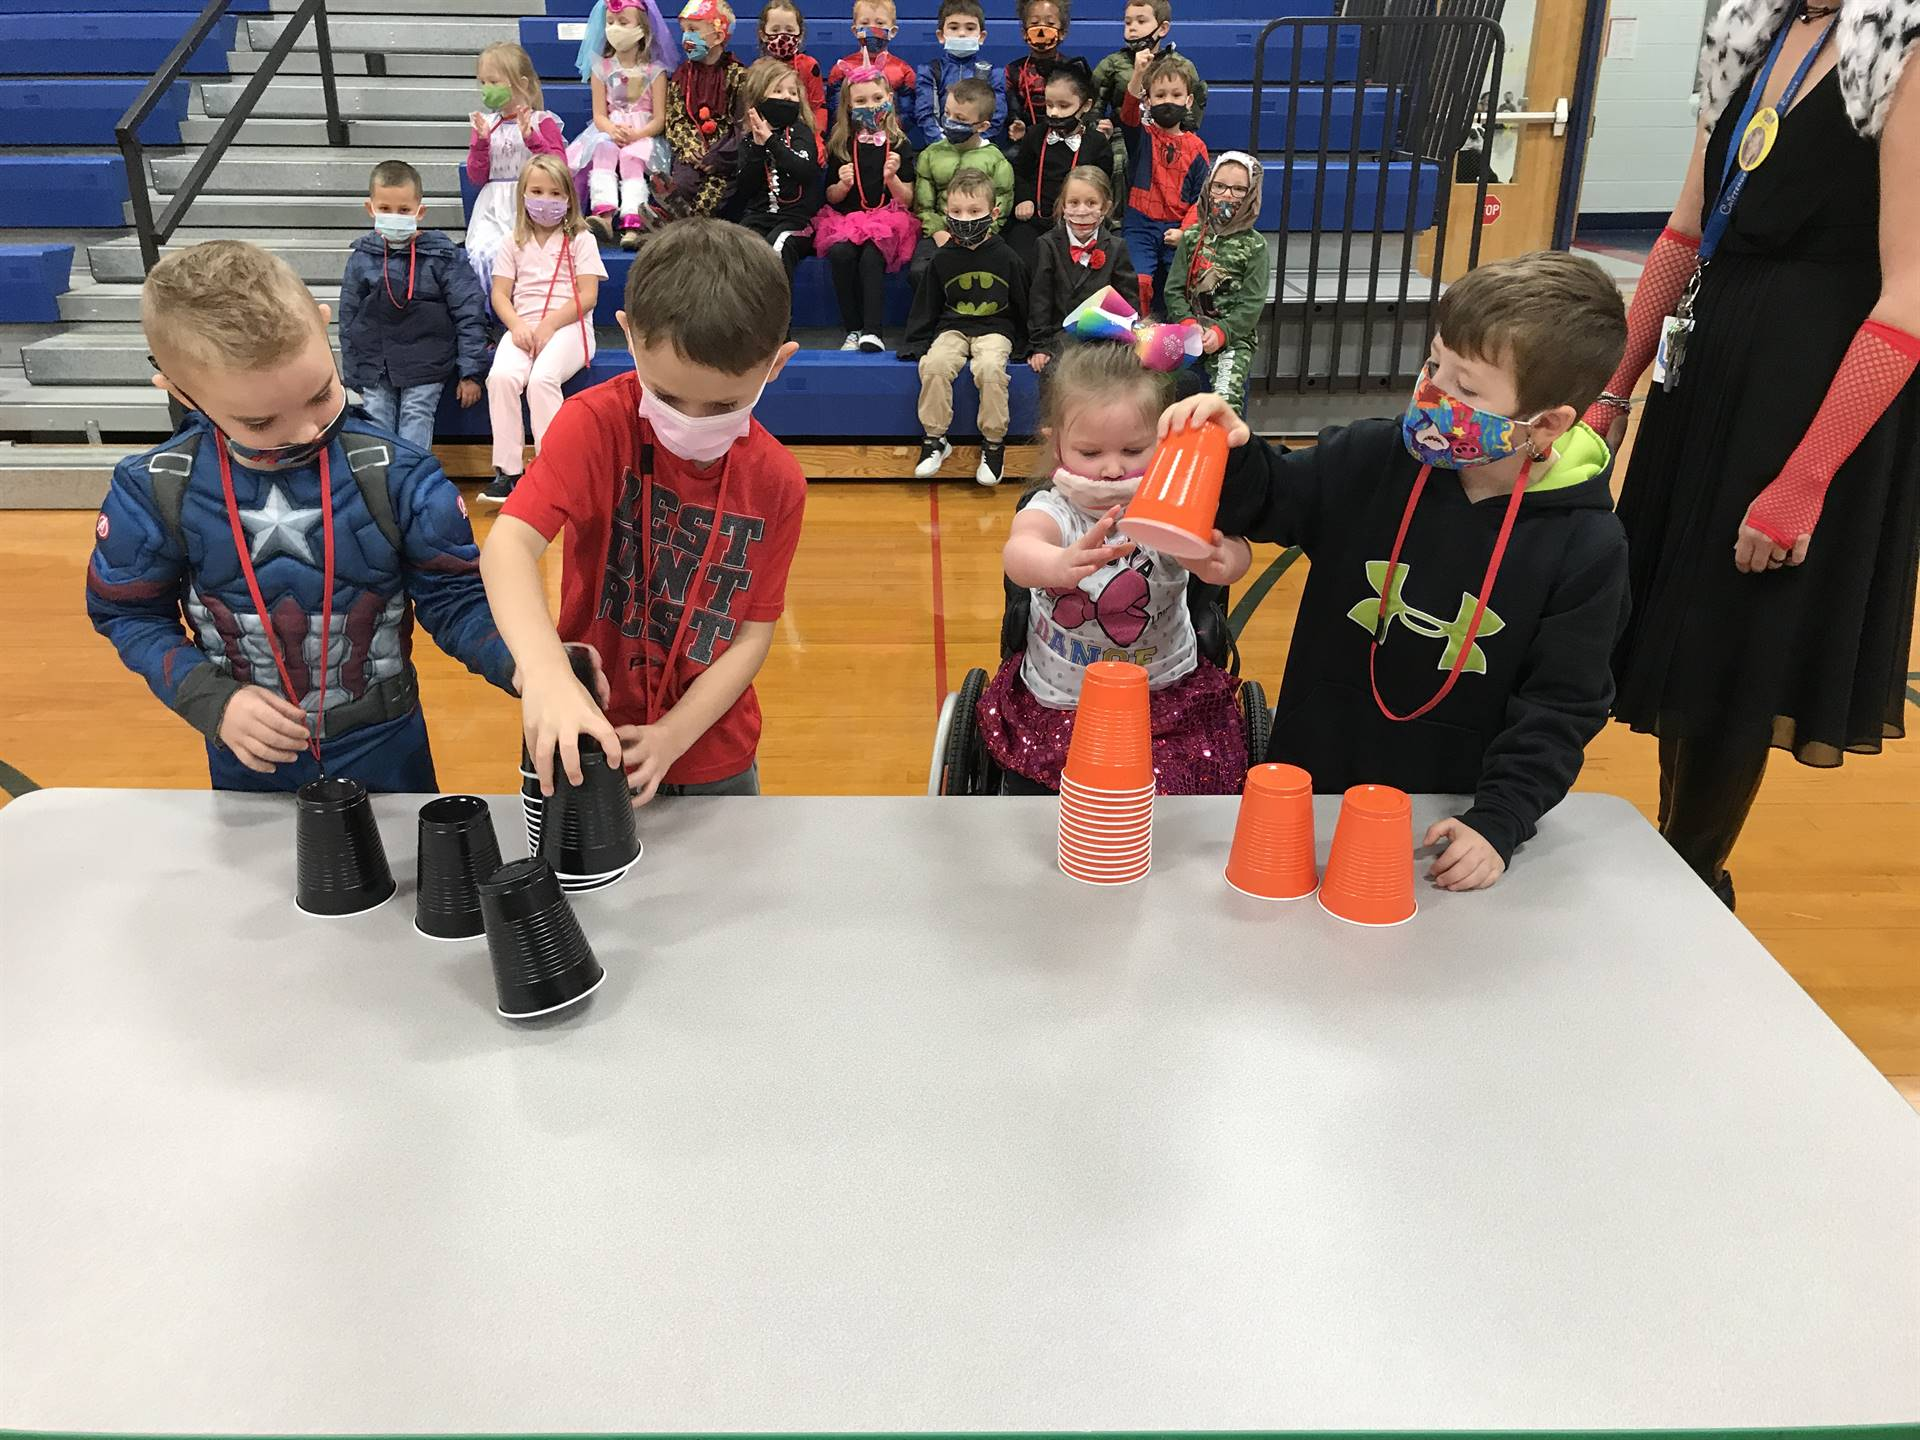 4 children building with orange and black cups on a table